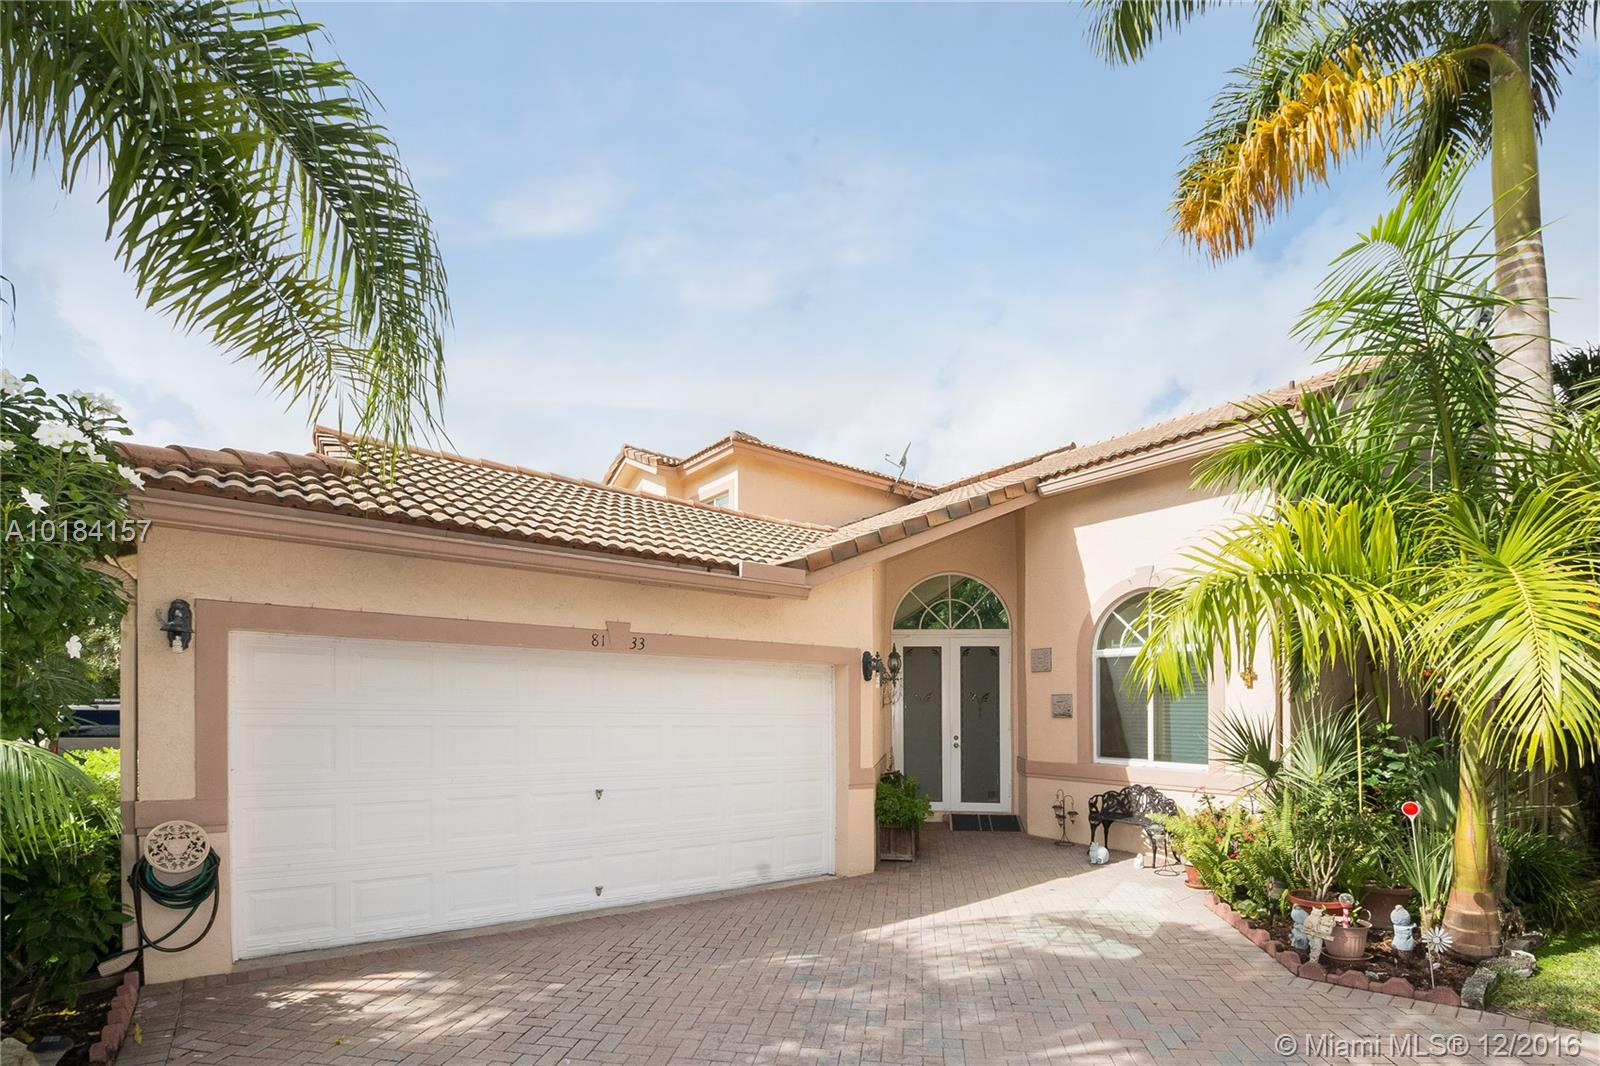 8133 Madison lakes-6 davie--fl-33328-a10184157-Pic01